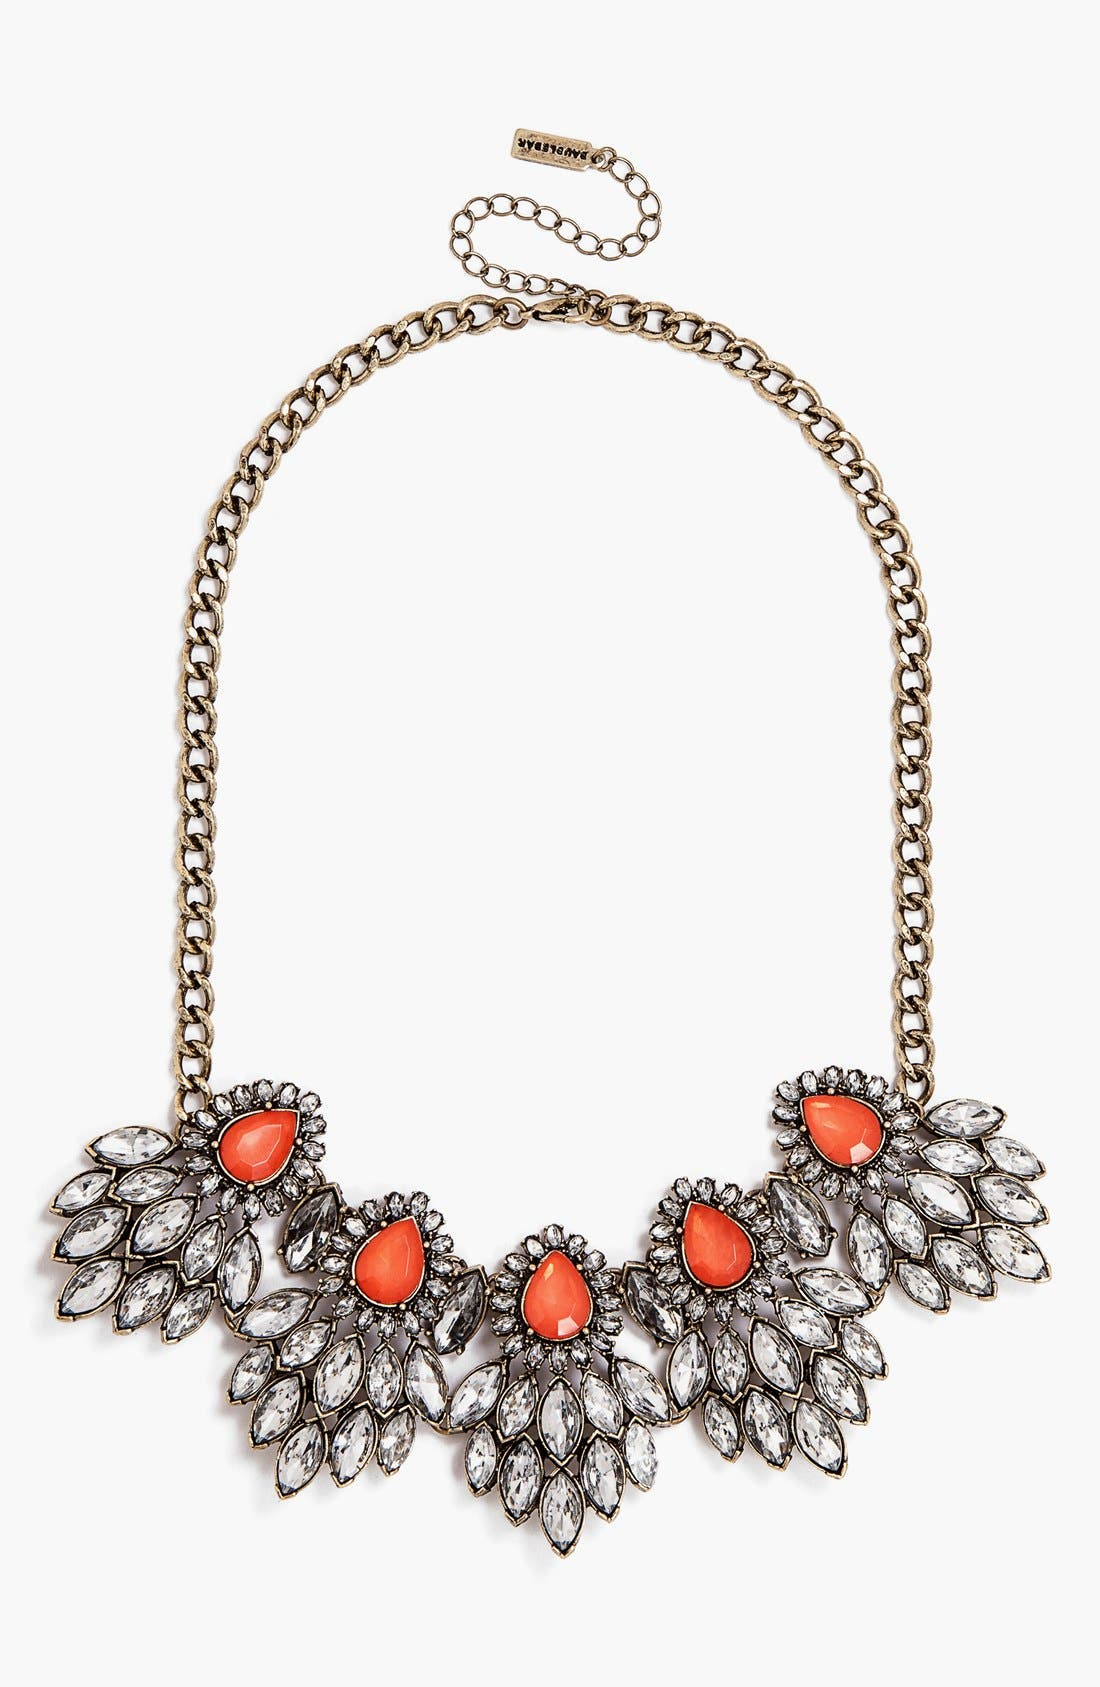 Alternate Image 1 Selected - BaubleBar 'Peacock Cluster' Frontal Necklace